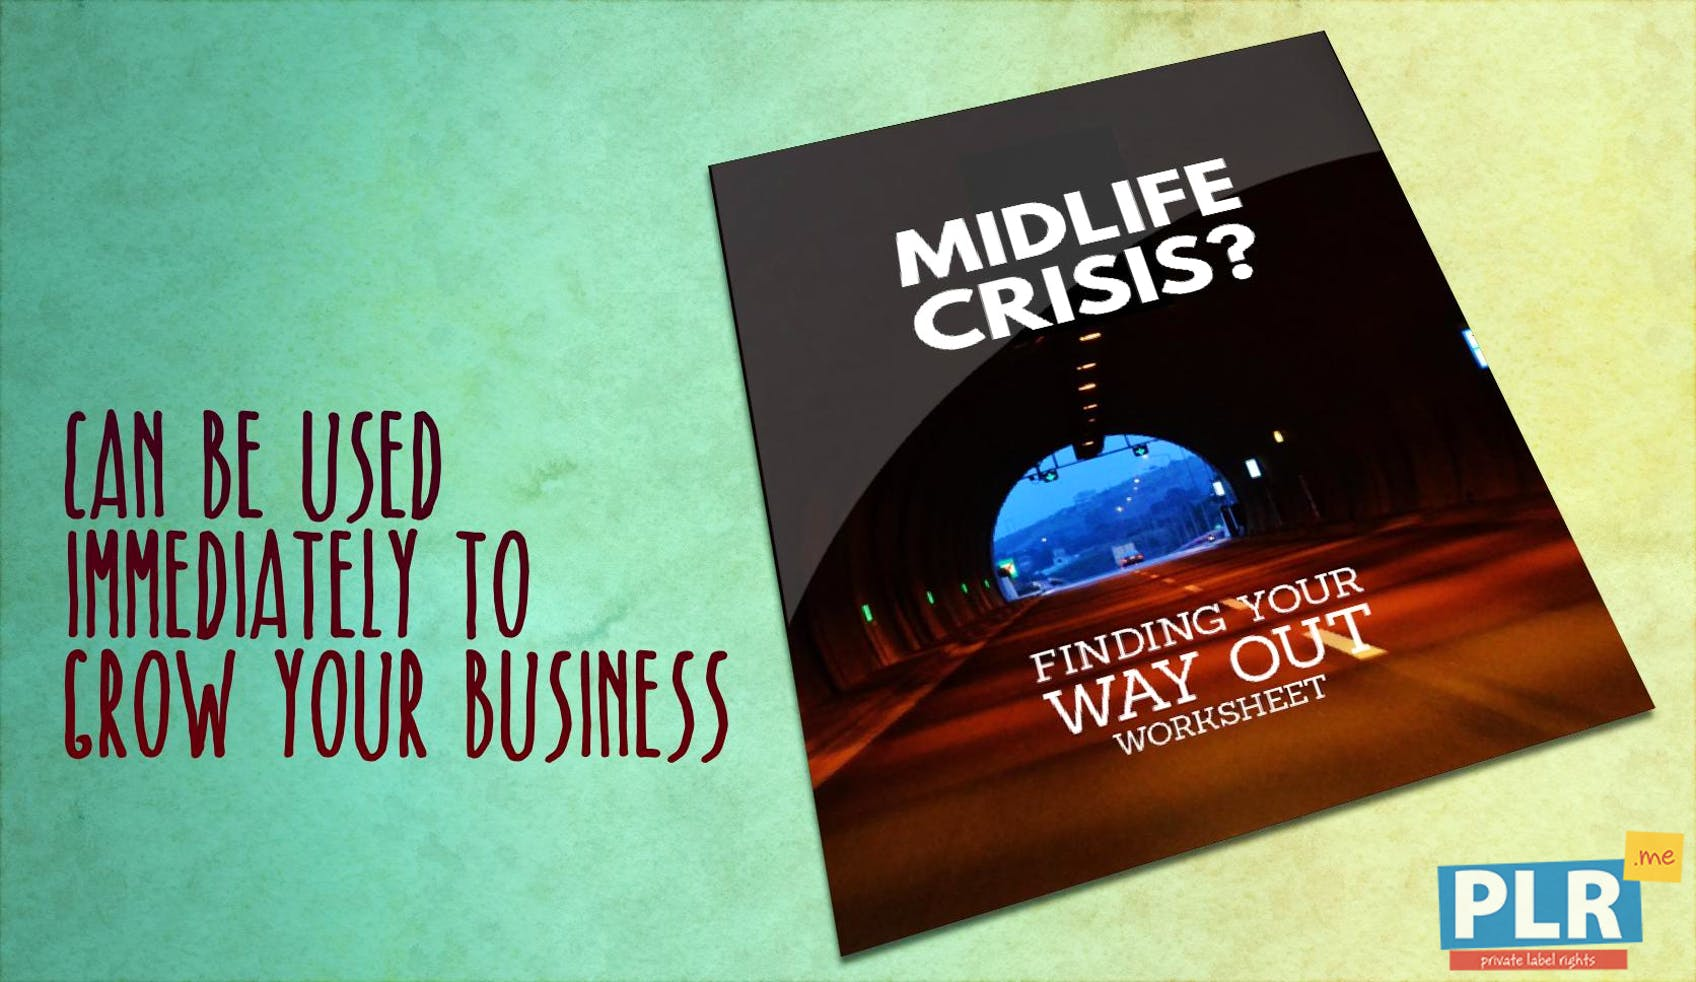 Midlife Crisis Finding Your Way Out Worksheet